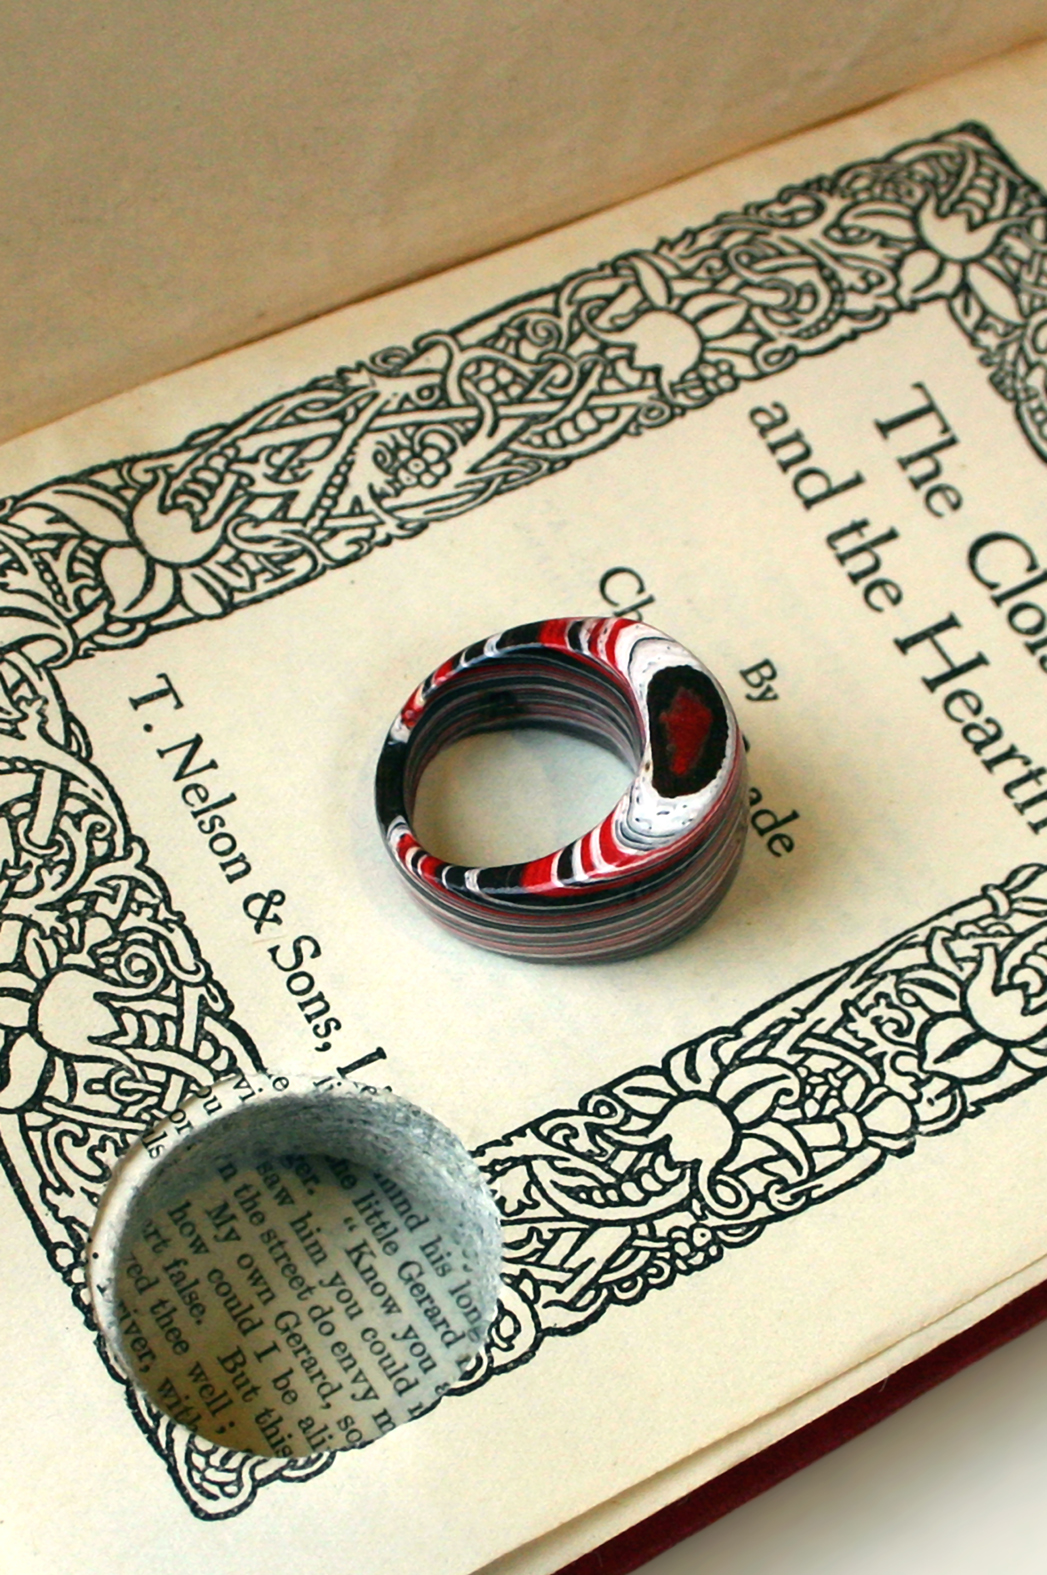 http://littlefly.co.uk/littlefly_wordpress/wp-content/gallery/rings-sold/002-book-w.jpg